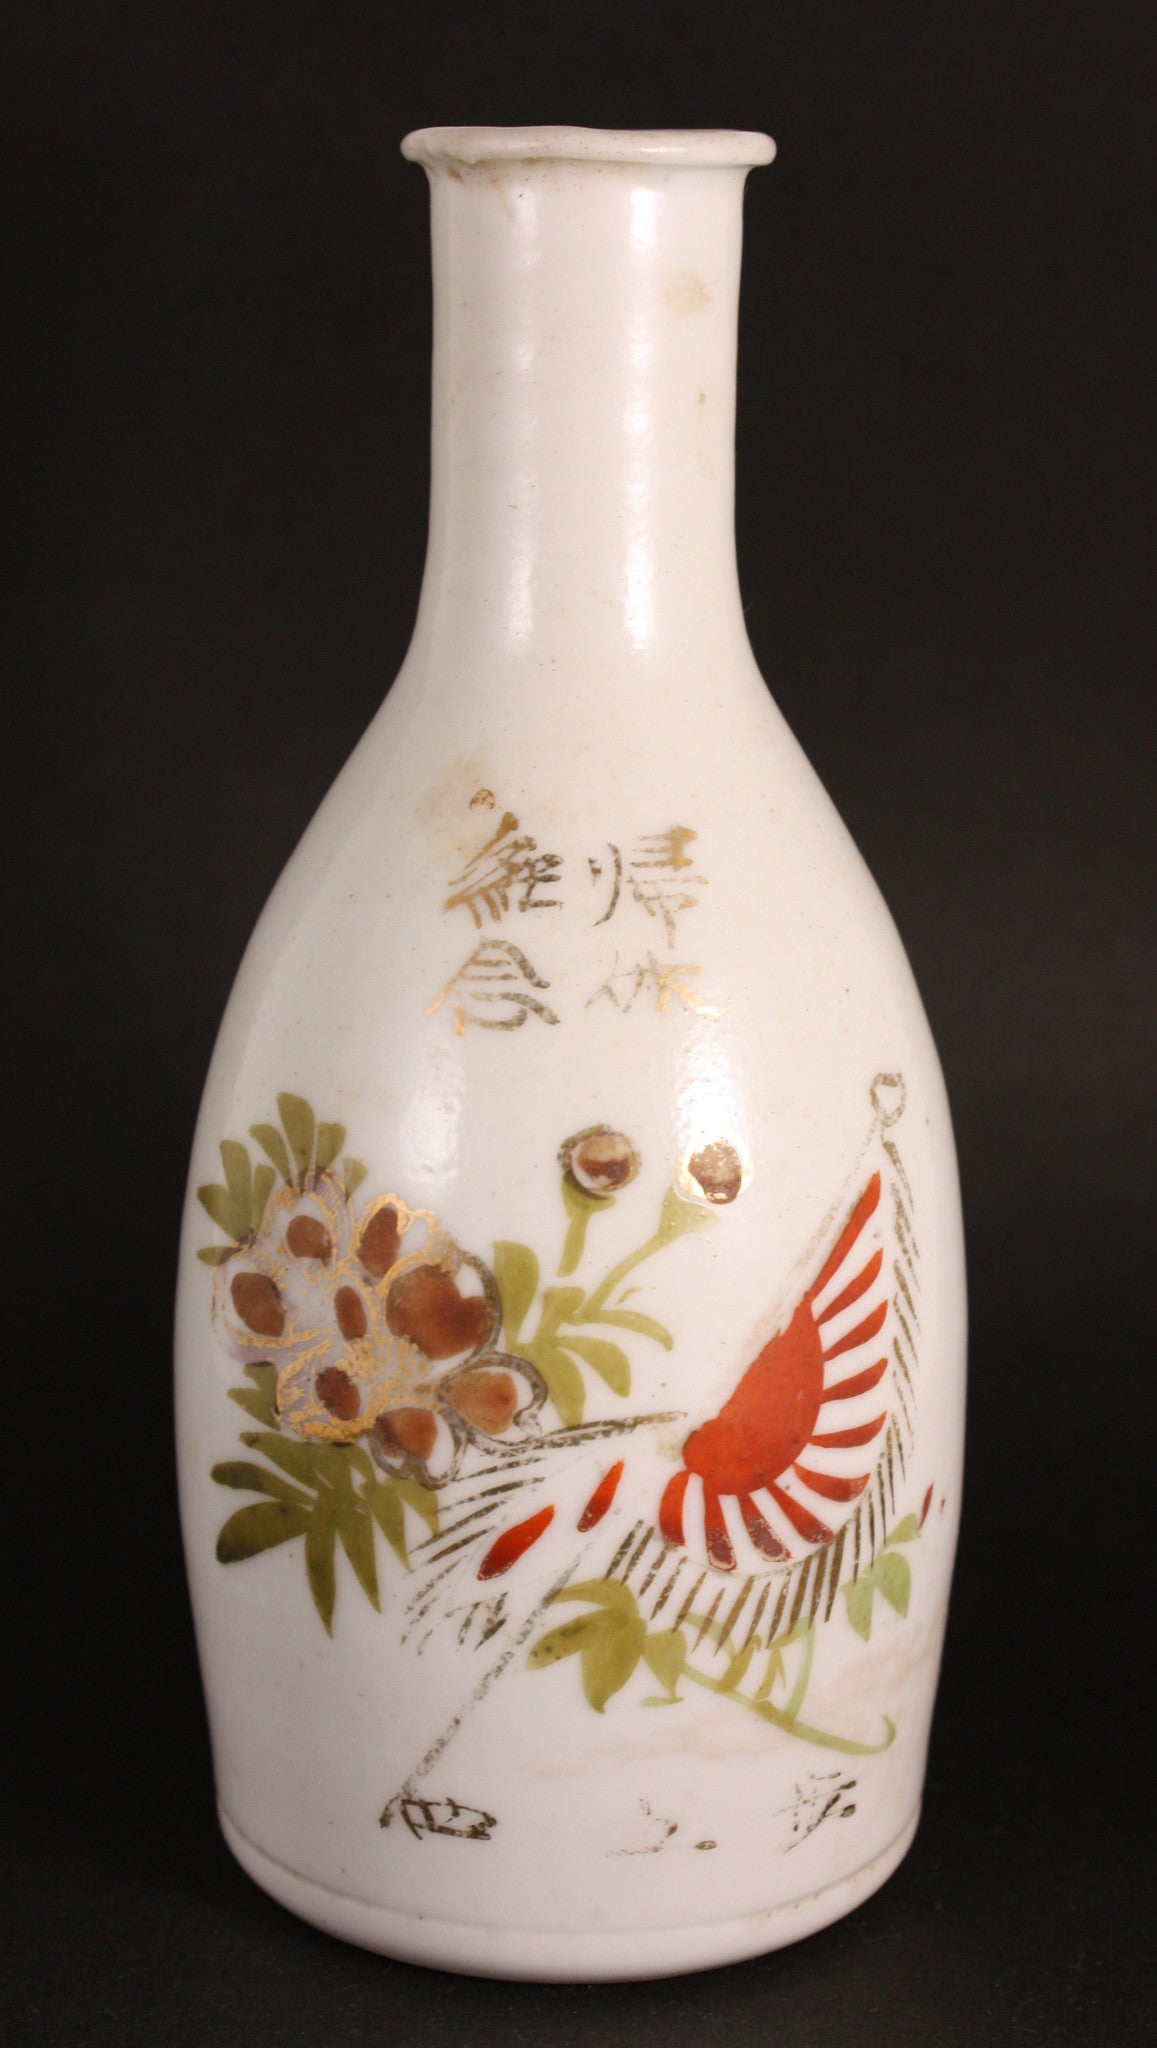 Antique Japanese Furlough Commemoration Army Sake Bottle